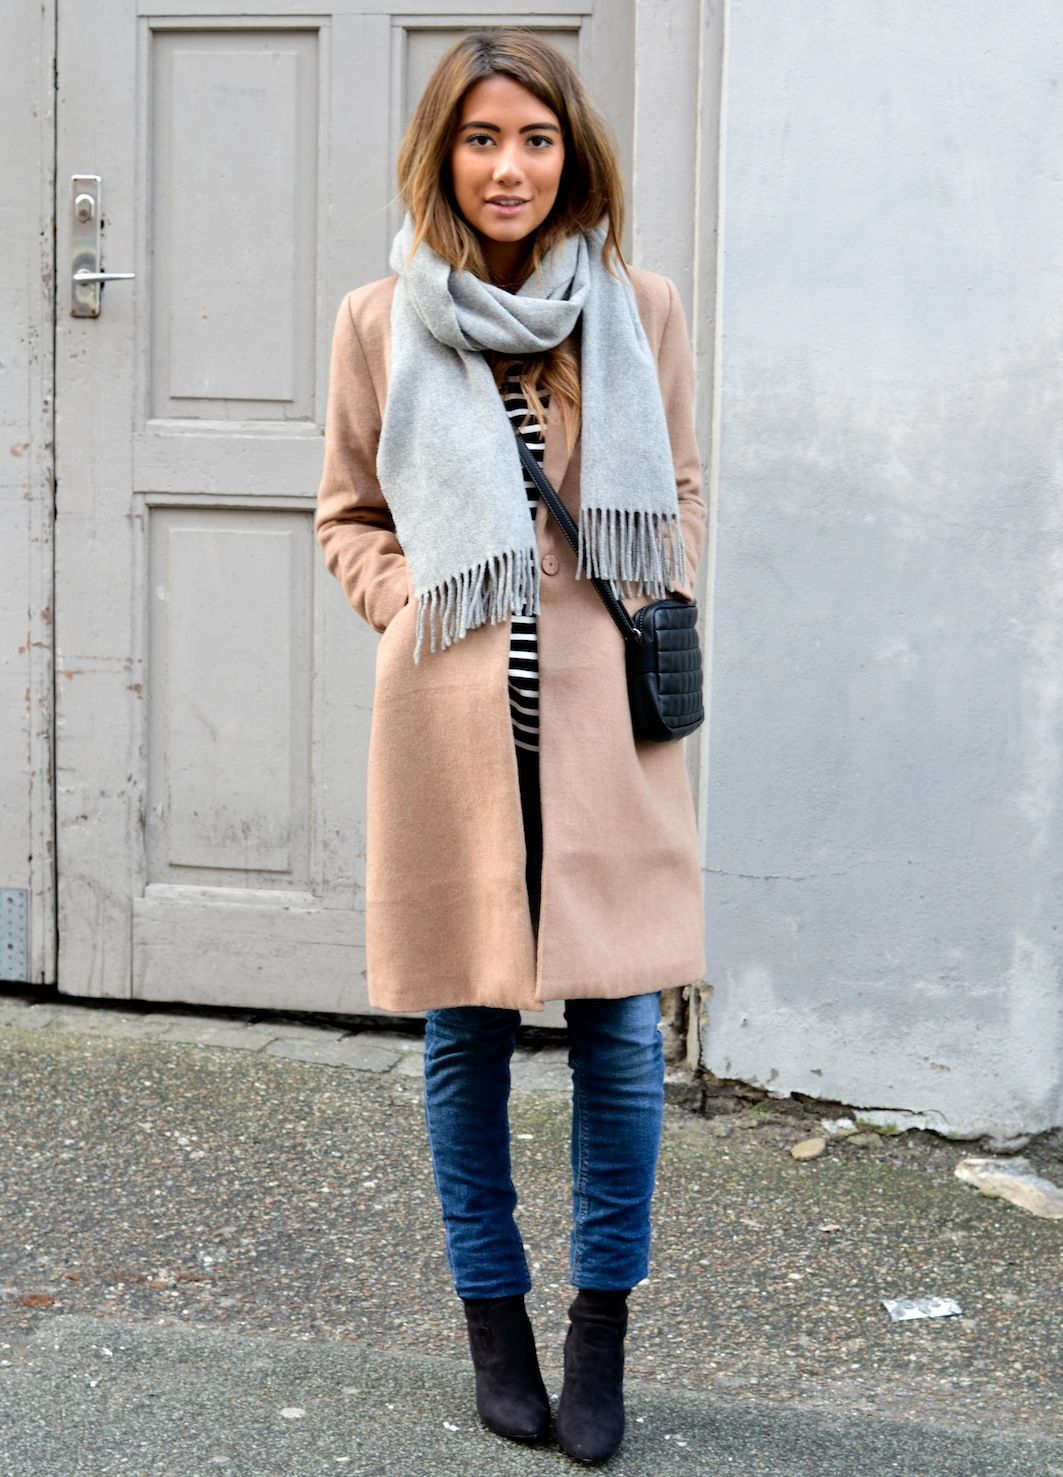 a6a115920c7a Camel coat + grey scarf. | STYLE | Fashion, Winter fashion, Camel coat